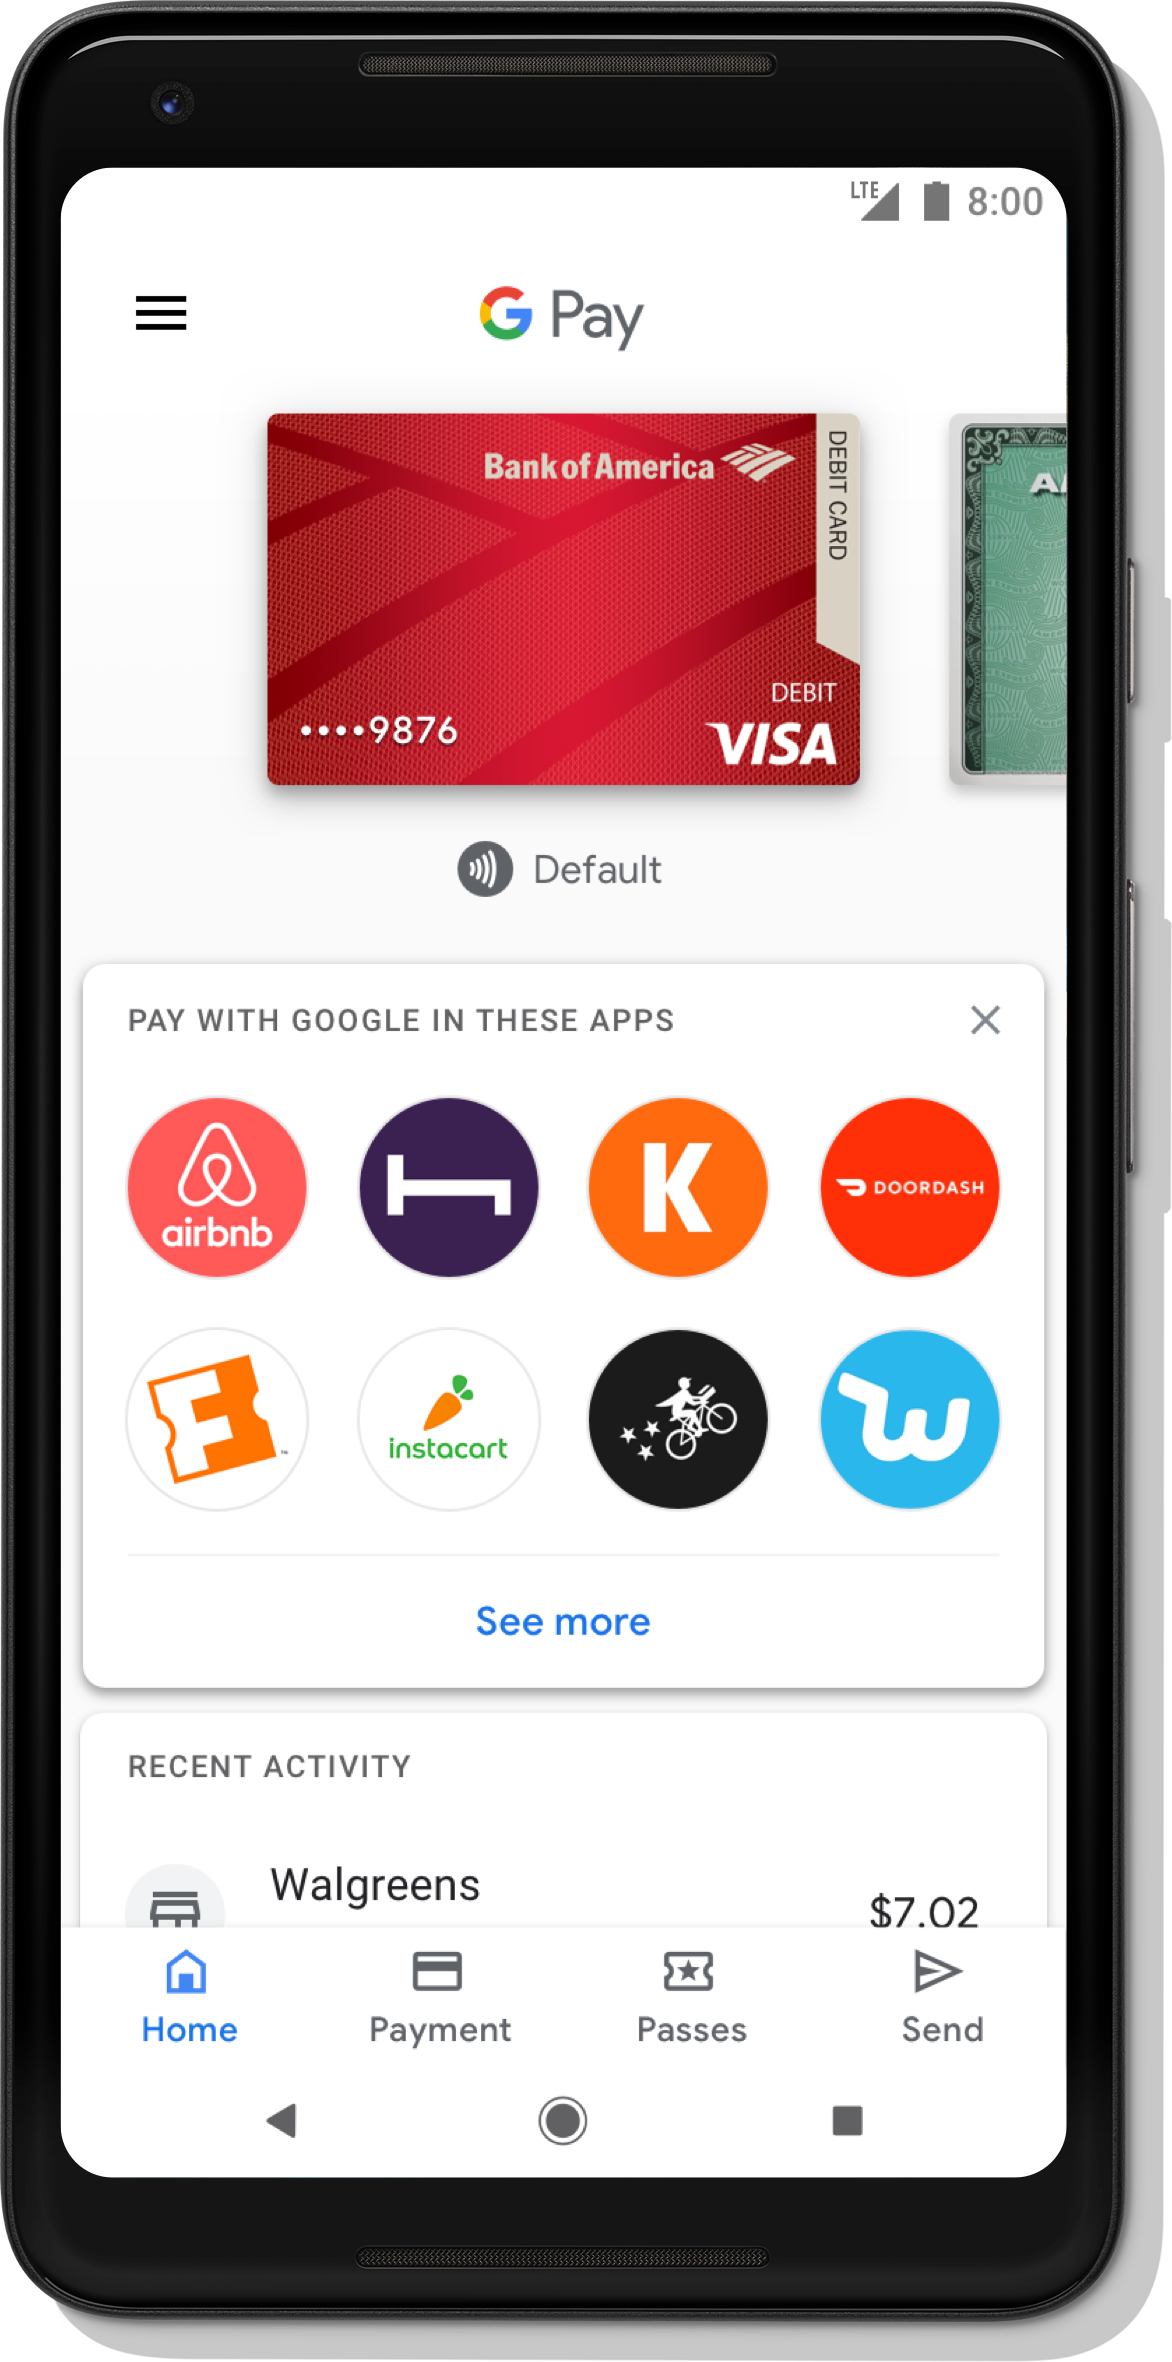 Google Pay app home screen